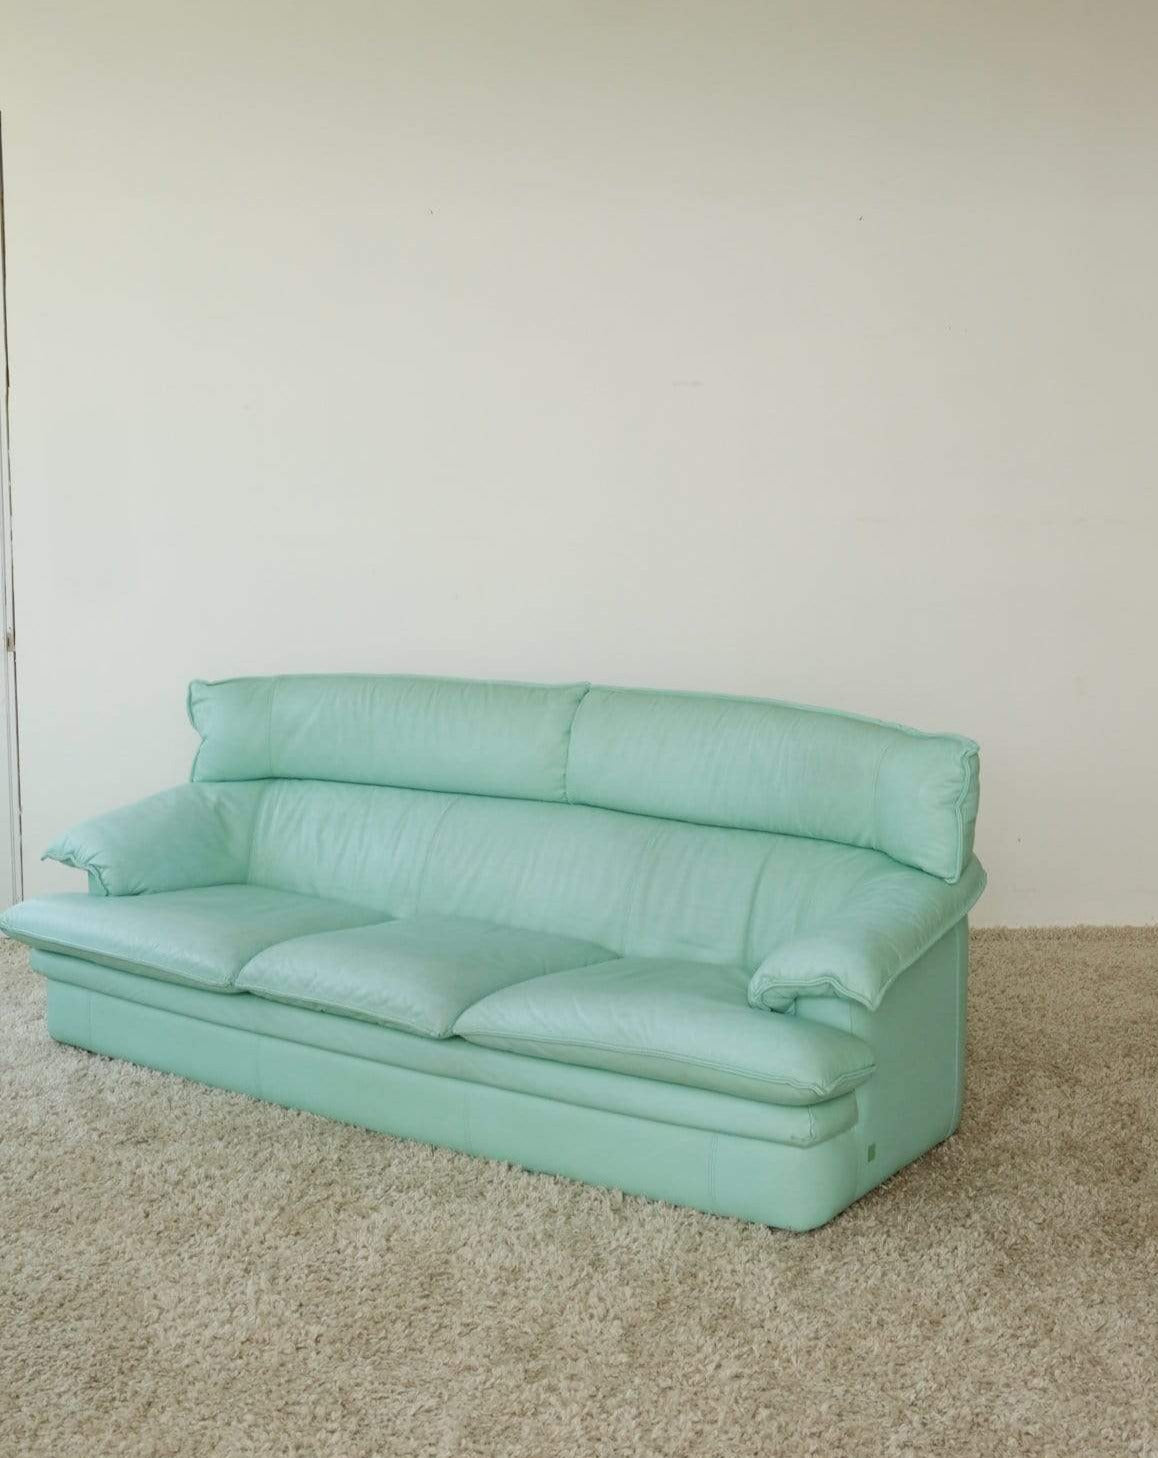 Nice Vintage Things  Seating 1970s Mint Leather 3 Seater Sofa by Monaco Furniture Nicoletti Italia